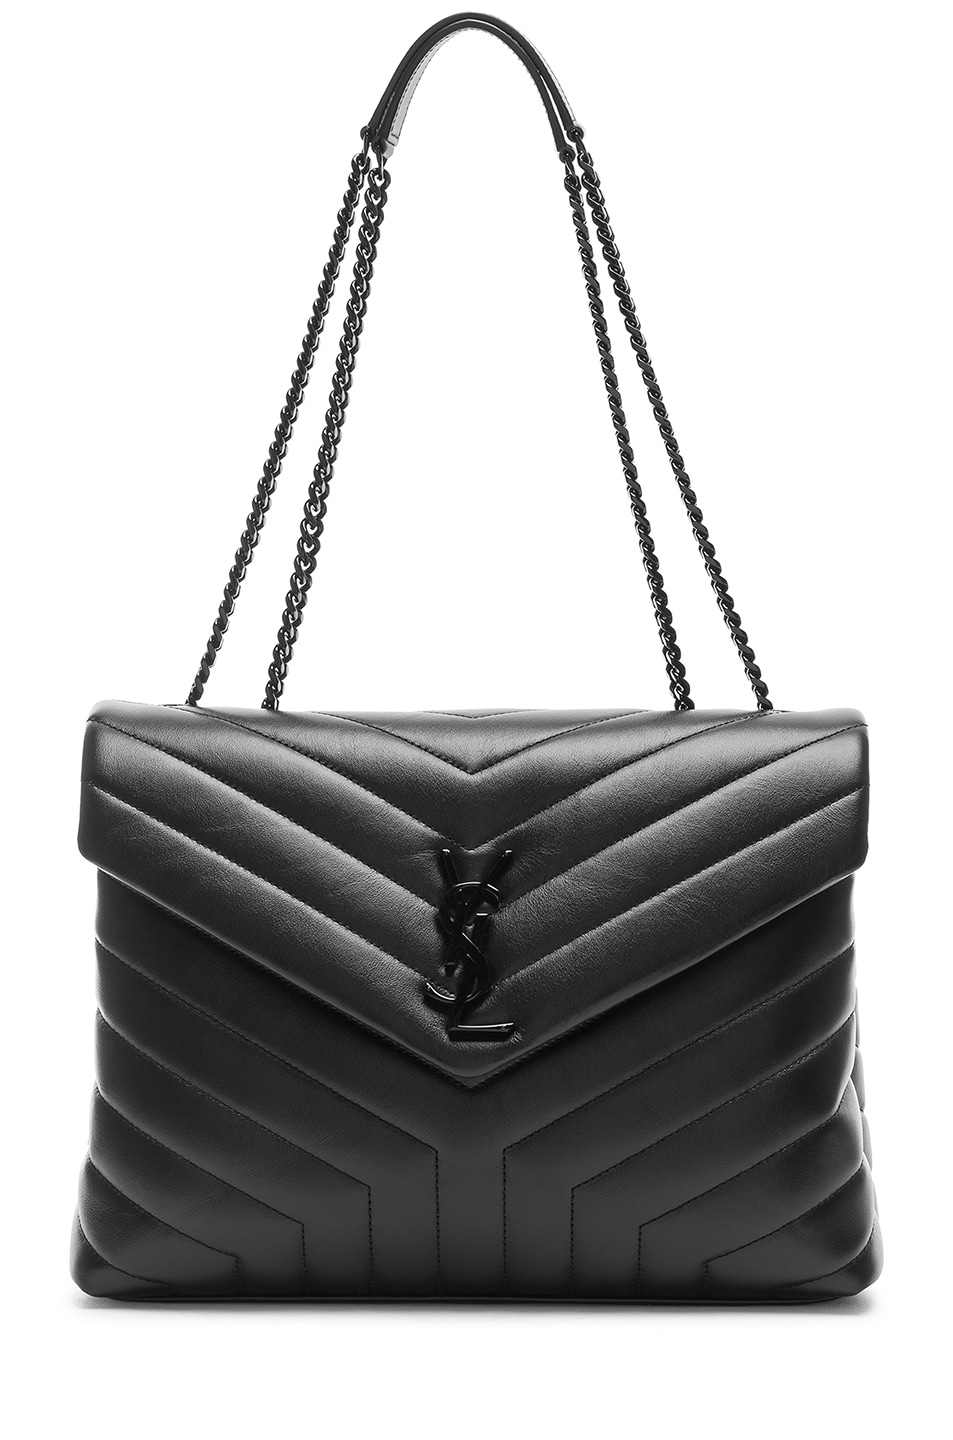 Image 6 of Saint Laurent Medium Supple Monogramme Loulou Chain Bag in Black & Black